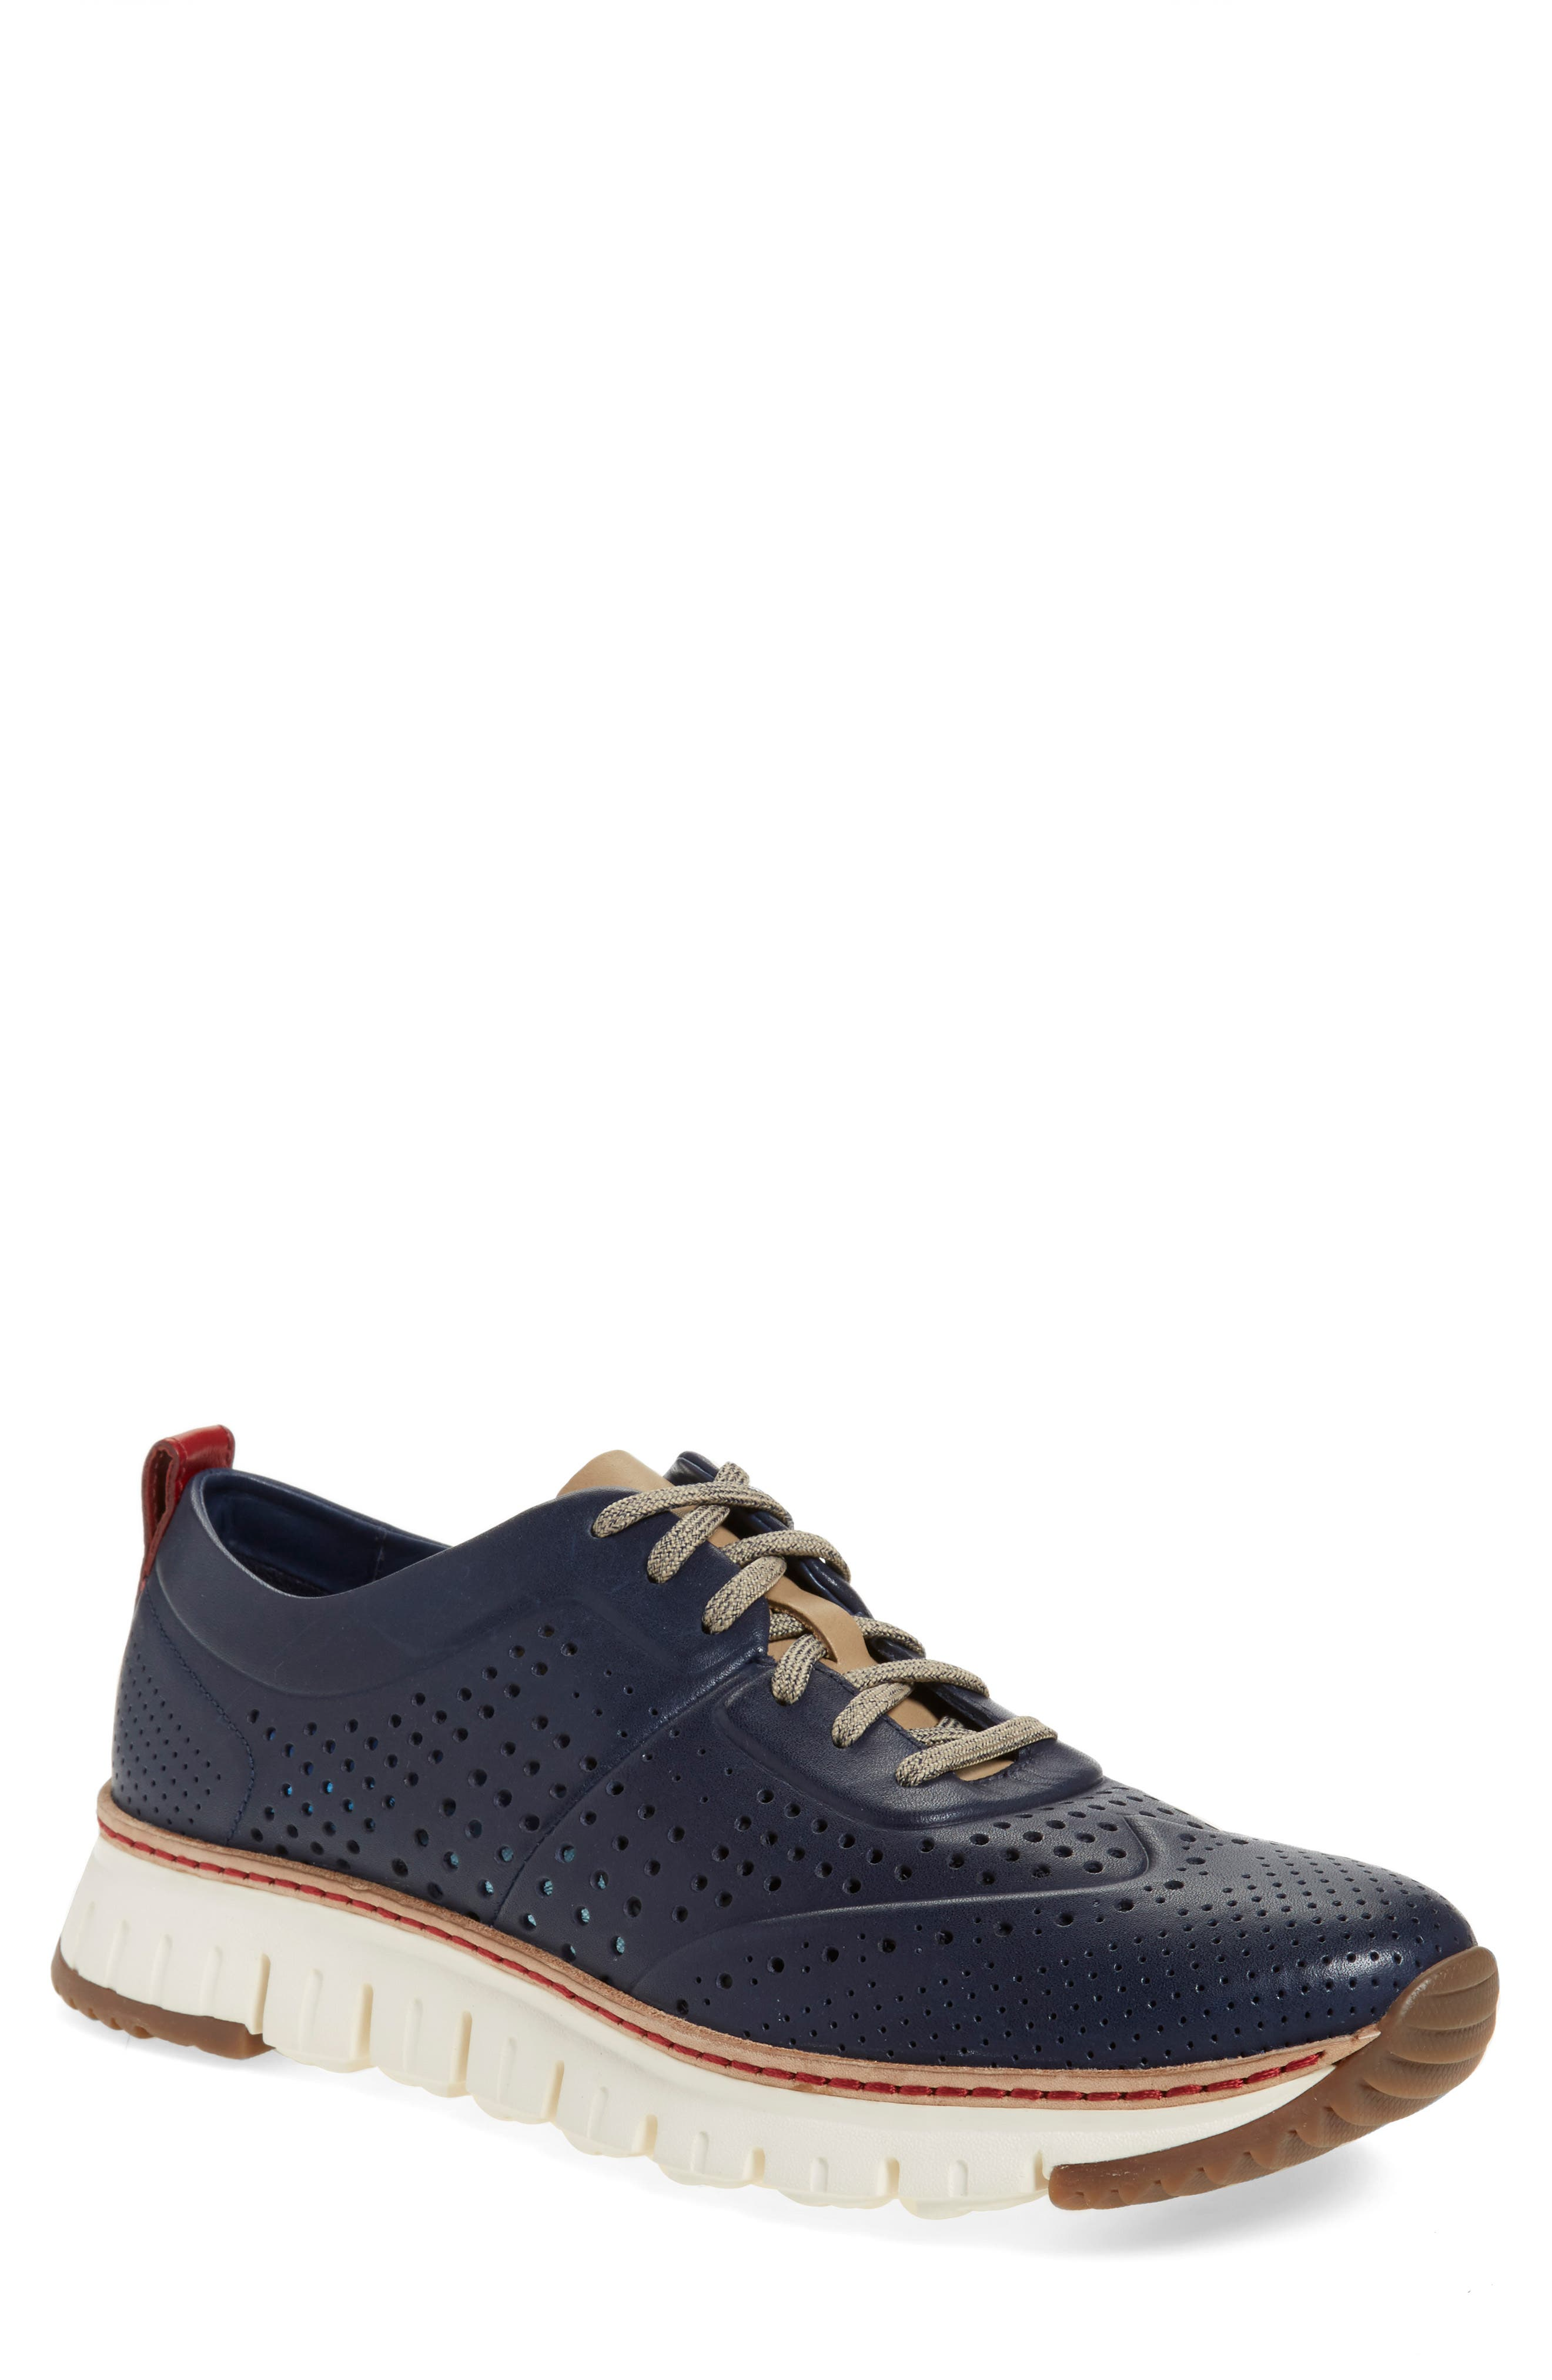 COLE HAAN,                             'ZerøGrand' Perforated Wingtip Sneaker,                             Alternate thumbnail 3, color,                             400